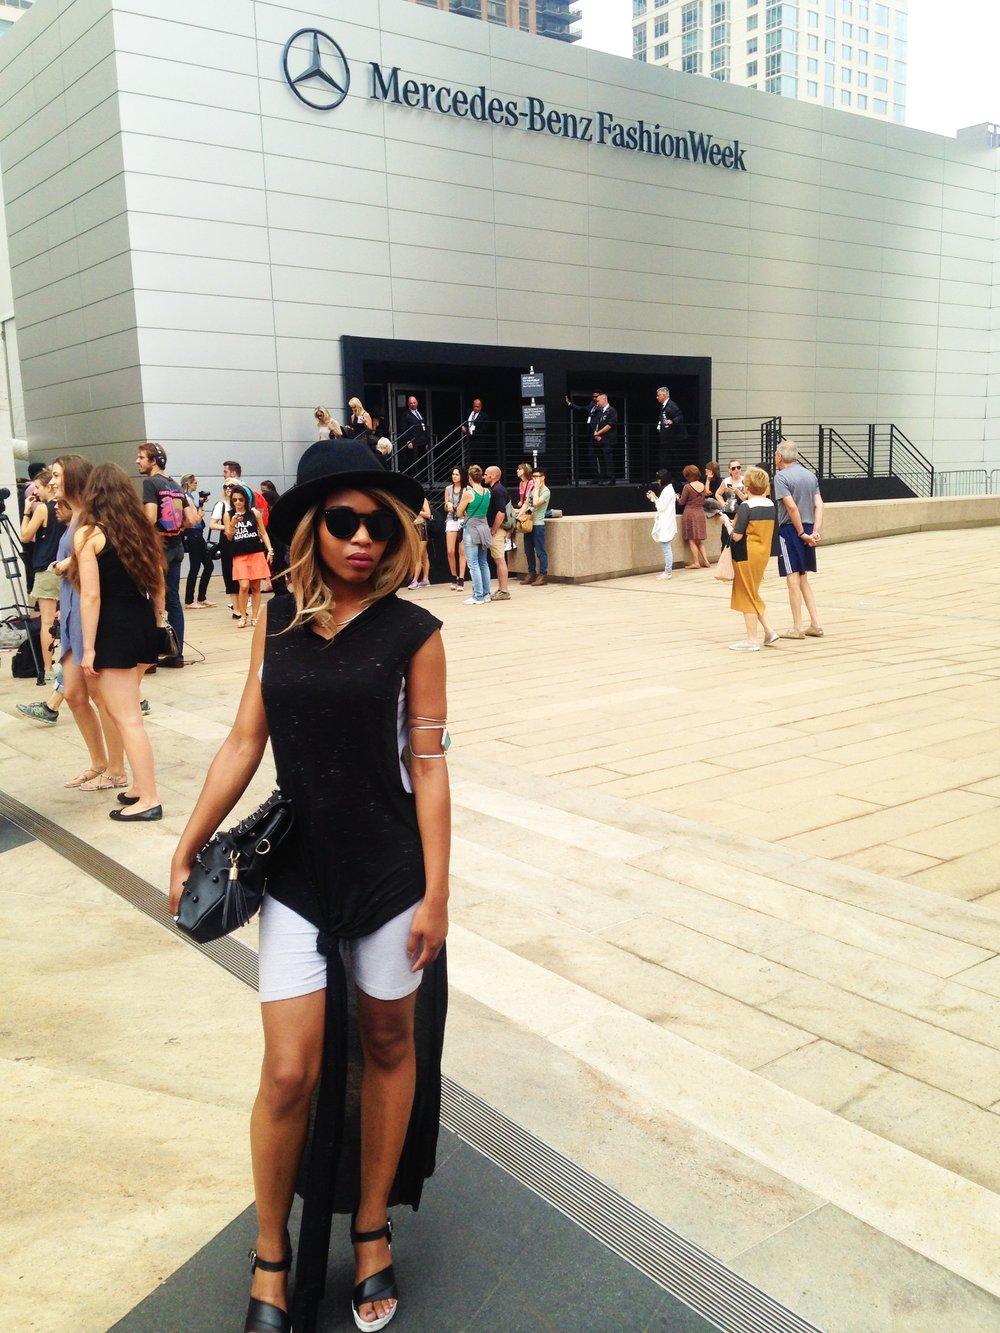 Photo taken outside Lincoln Center where the Mercedes Benz Fashion Week was held.